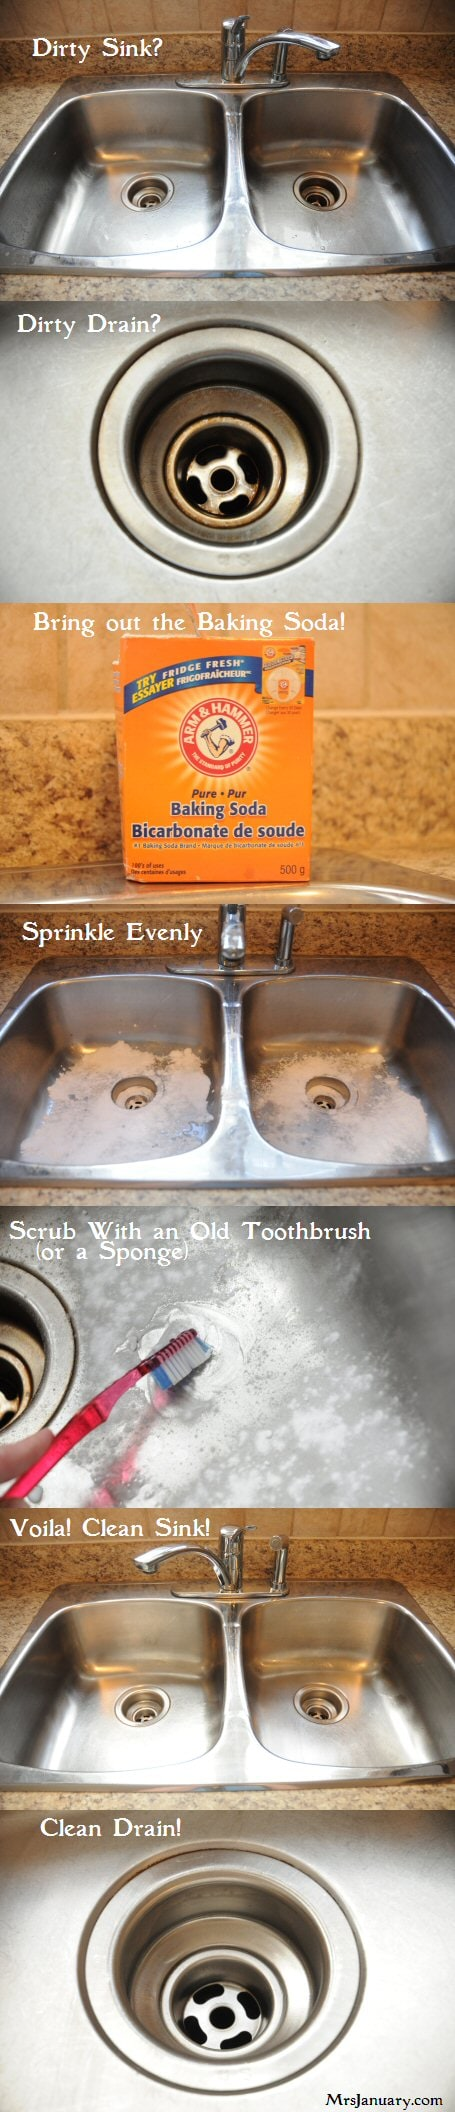 Hack #78: Clean your sink with baking soda